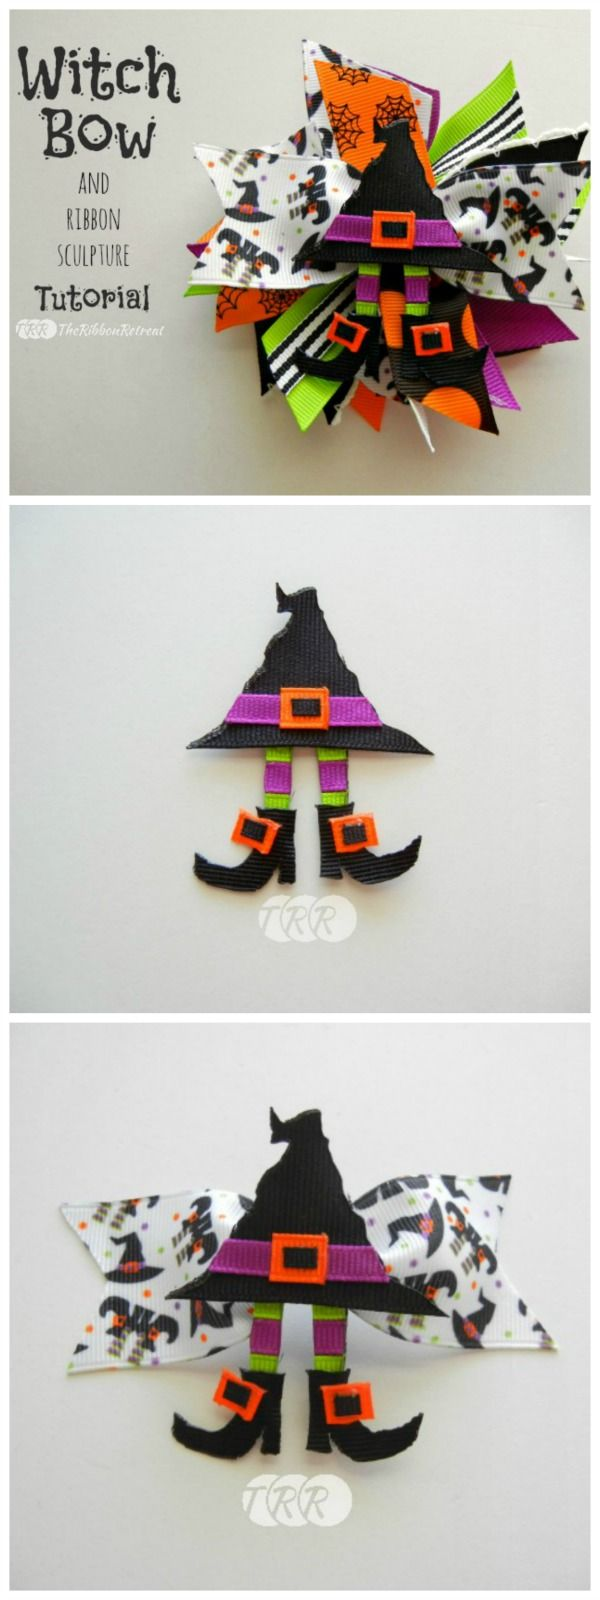 Witch Bow and Ribbon Sculpture - The Ribbon Retreat Blog